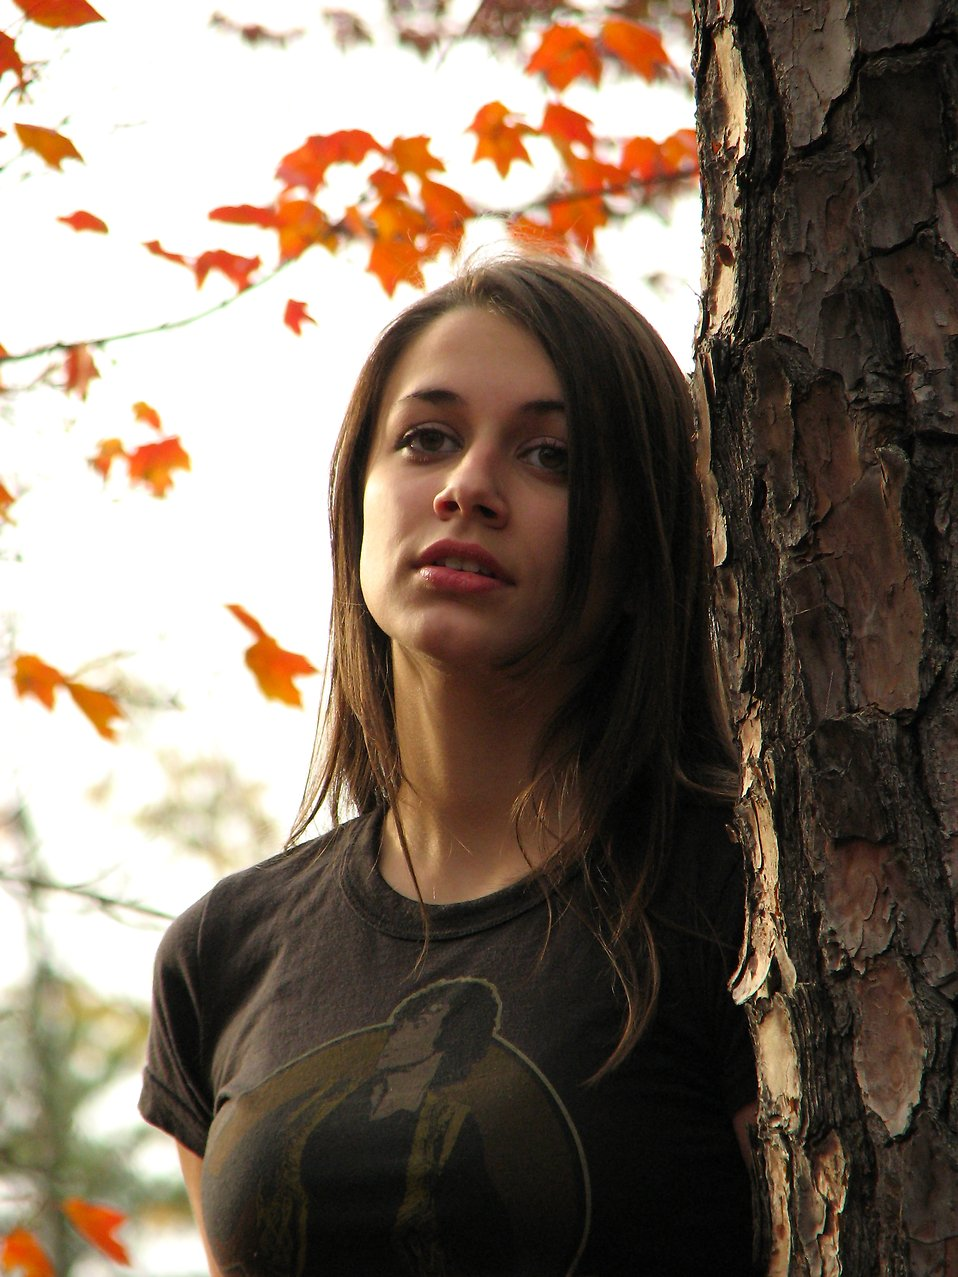 A teenage girl leaning on a tree : Free Stock Photo